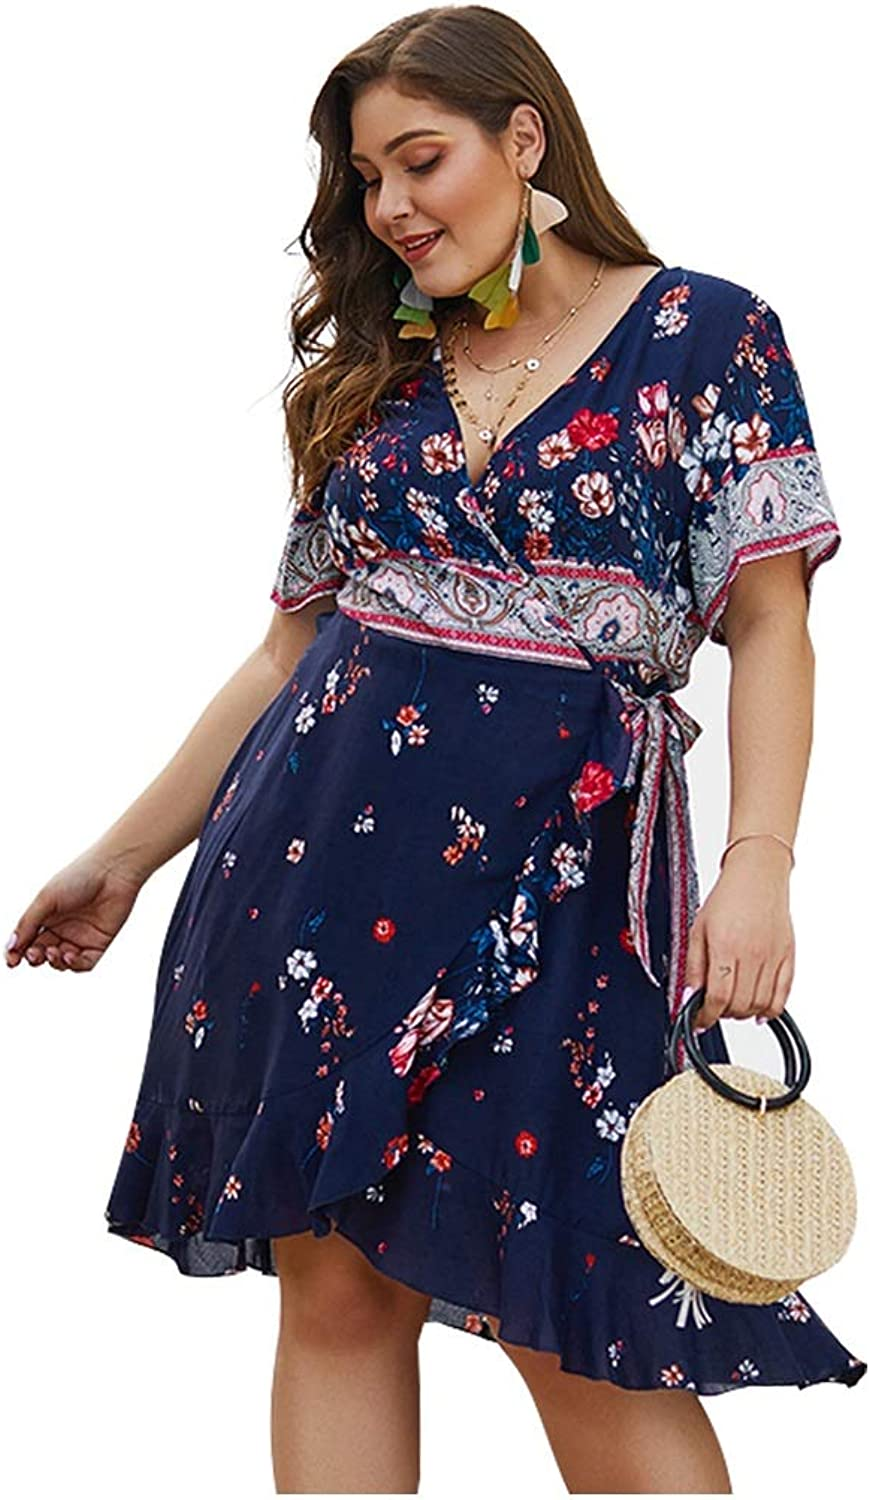 CARRY Dress, European and American Summer Big Swing Cocktail Women's Cotton Printed Ruffled Large Size Dress (Size   2XL)